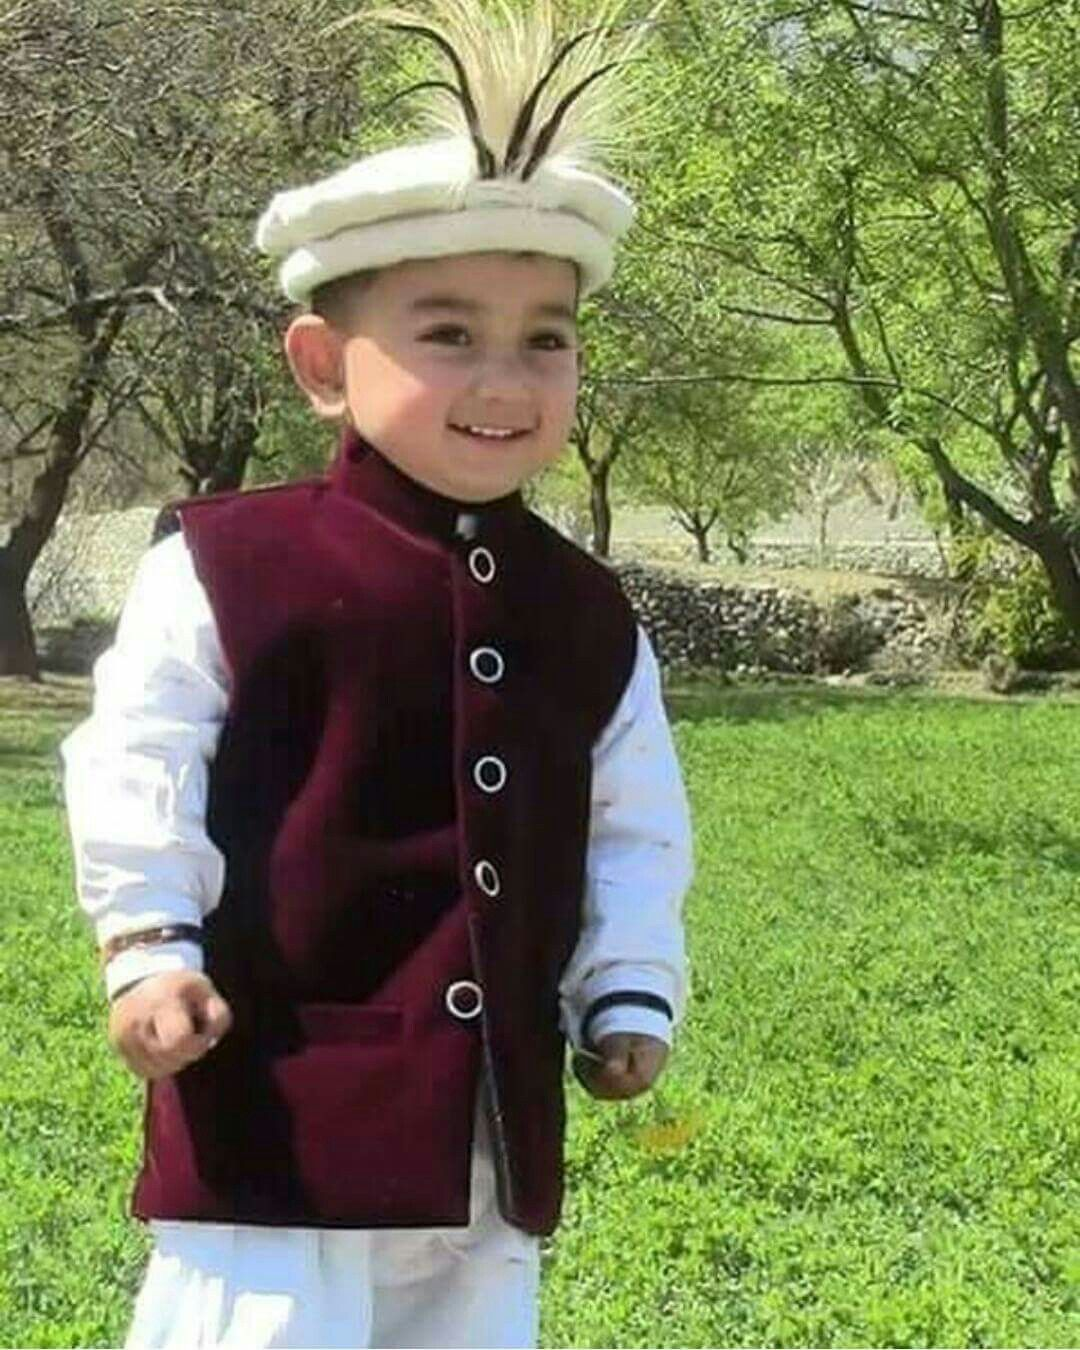 Cute Gilgit boy Gilgit Pakistan